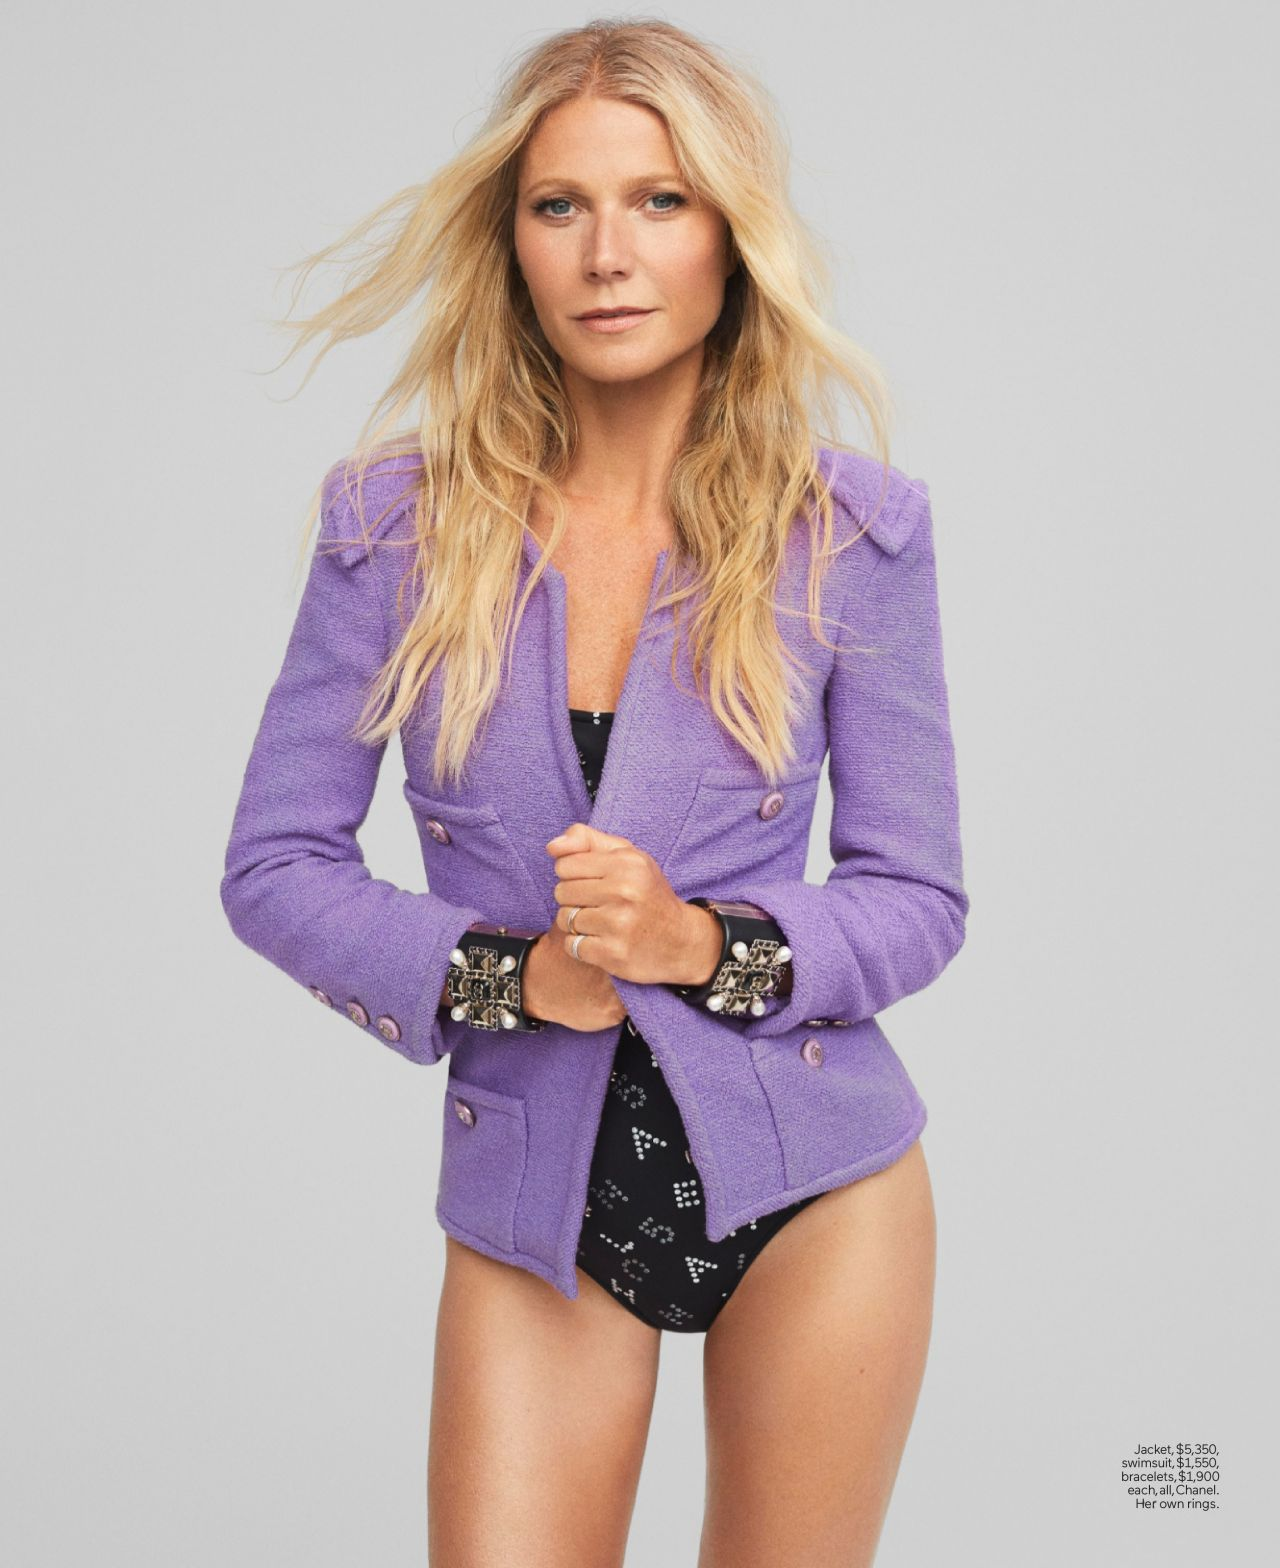 Gwyneth Paltrow super sexy in Elle magazine